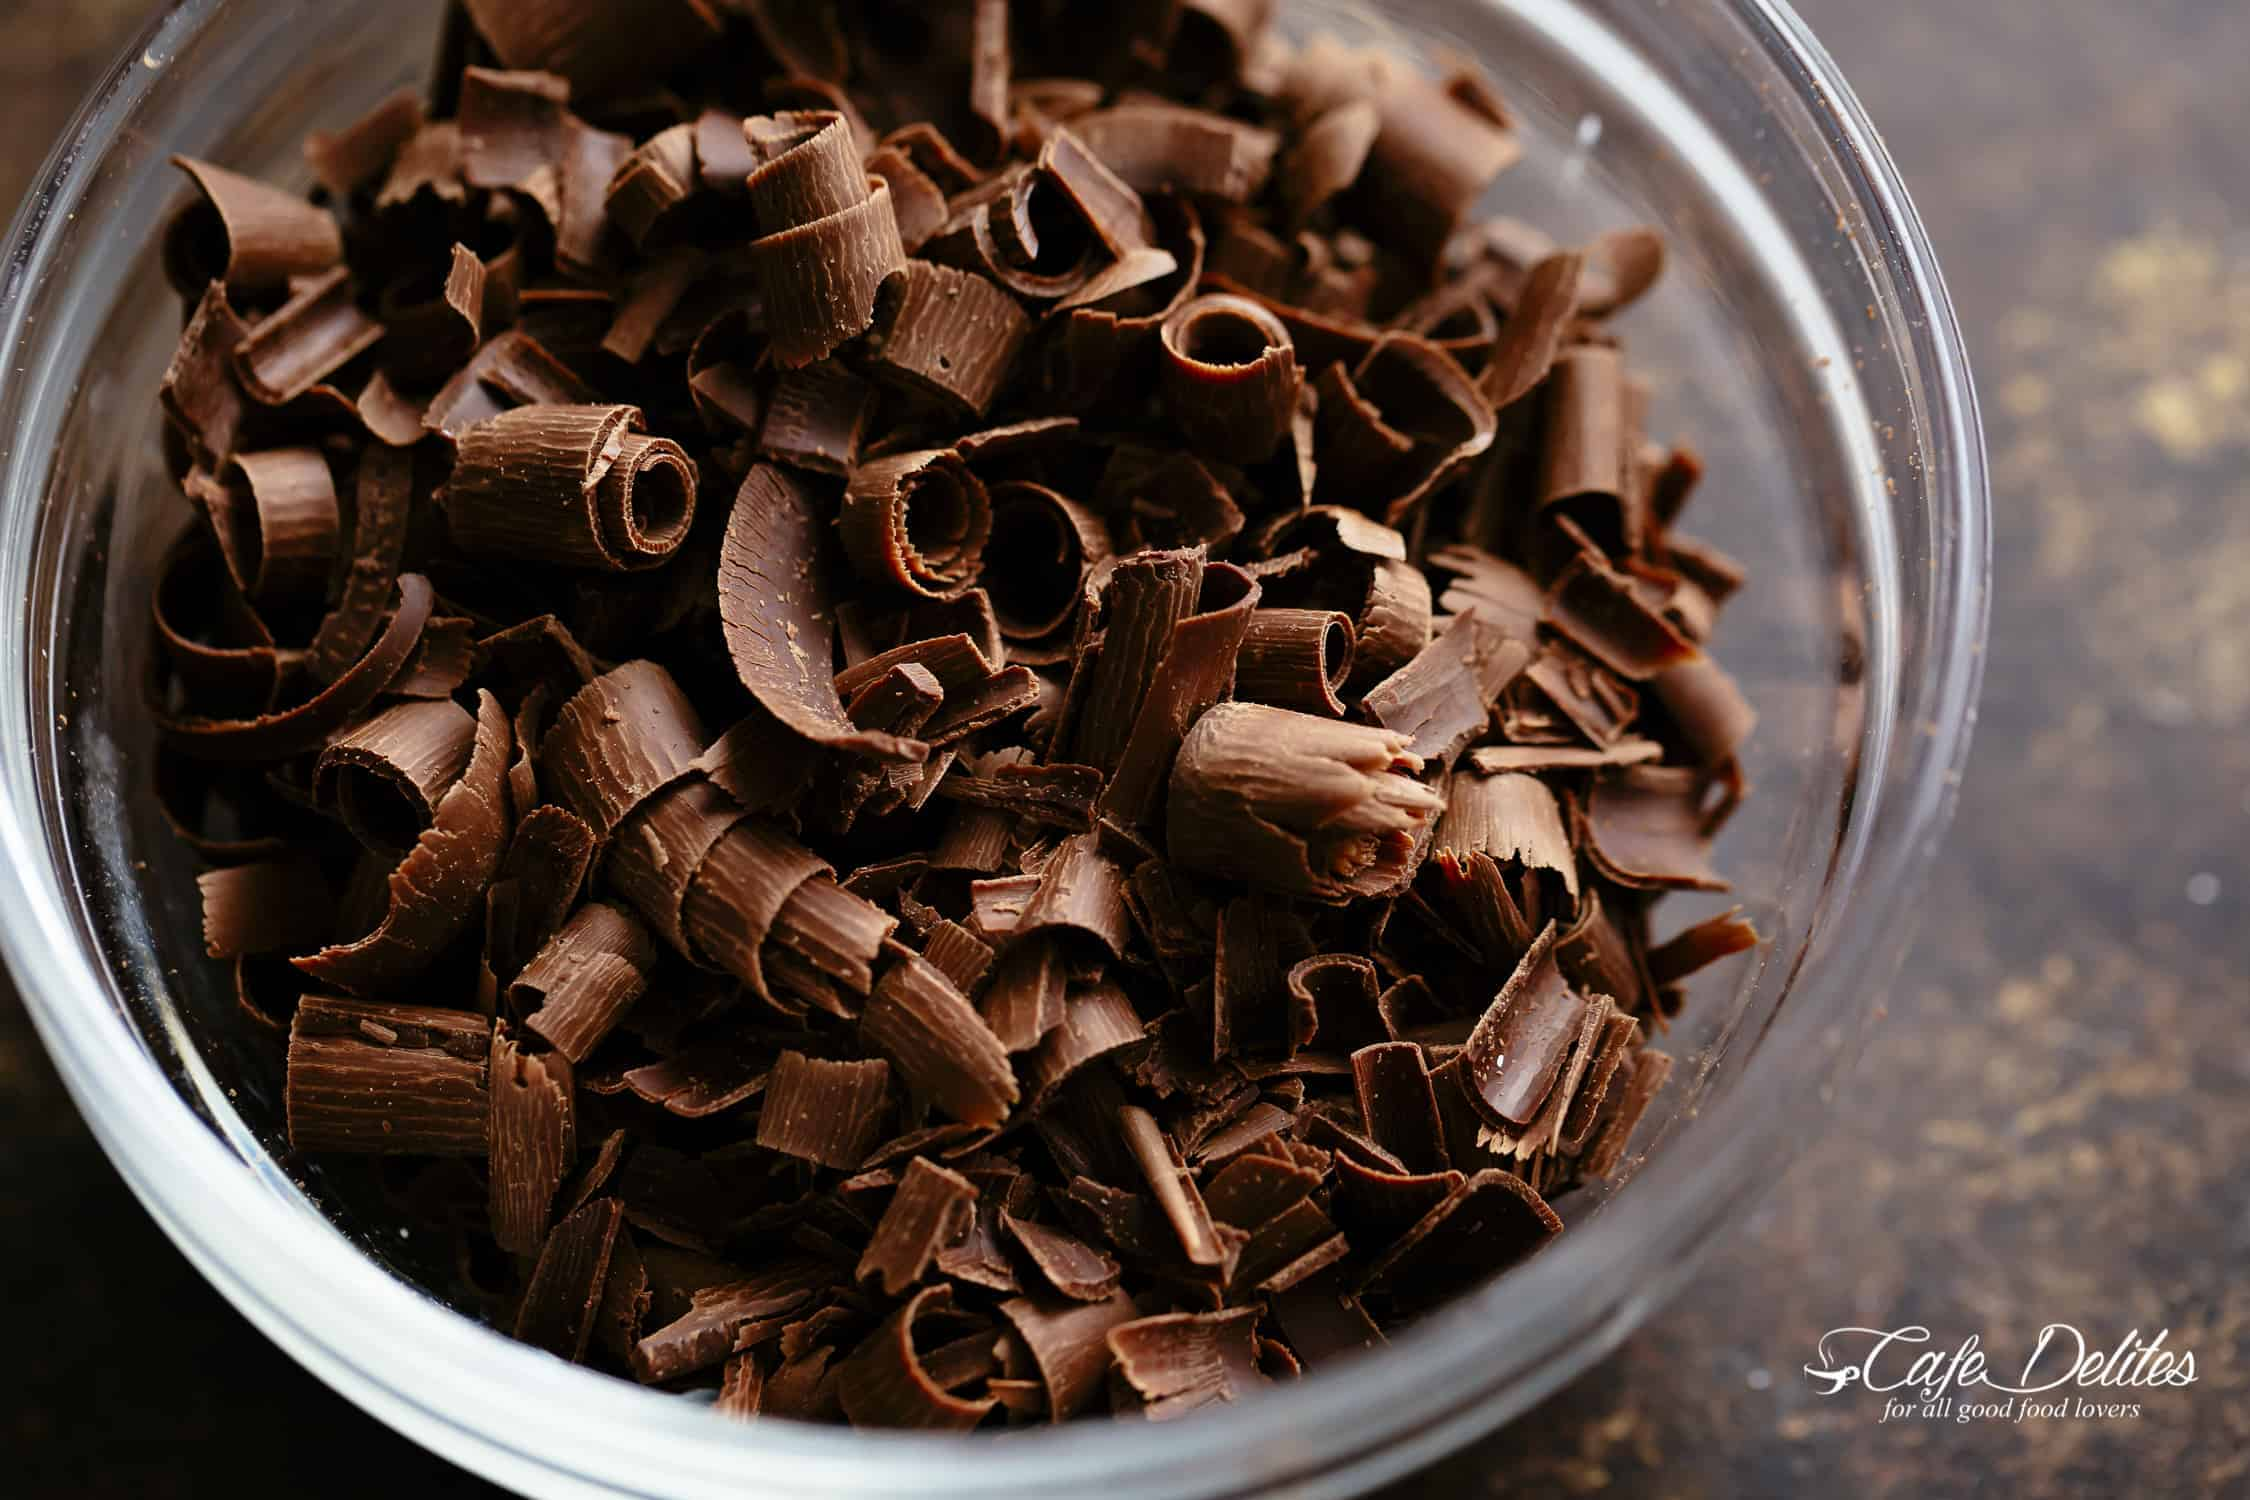 Chocolate curls | cafedelites.com